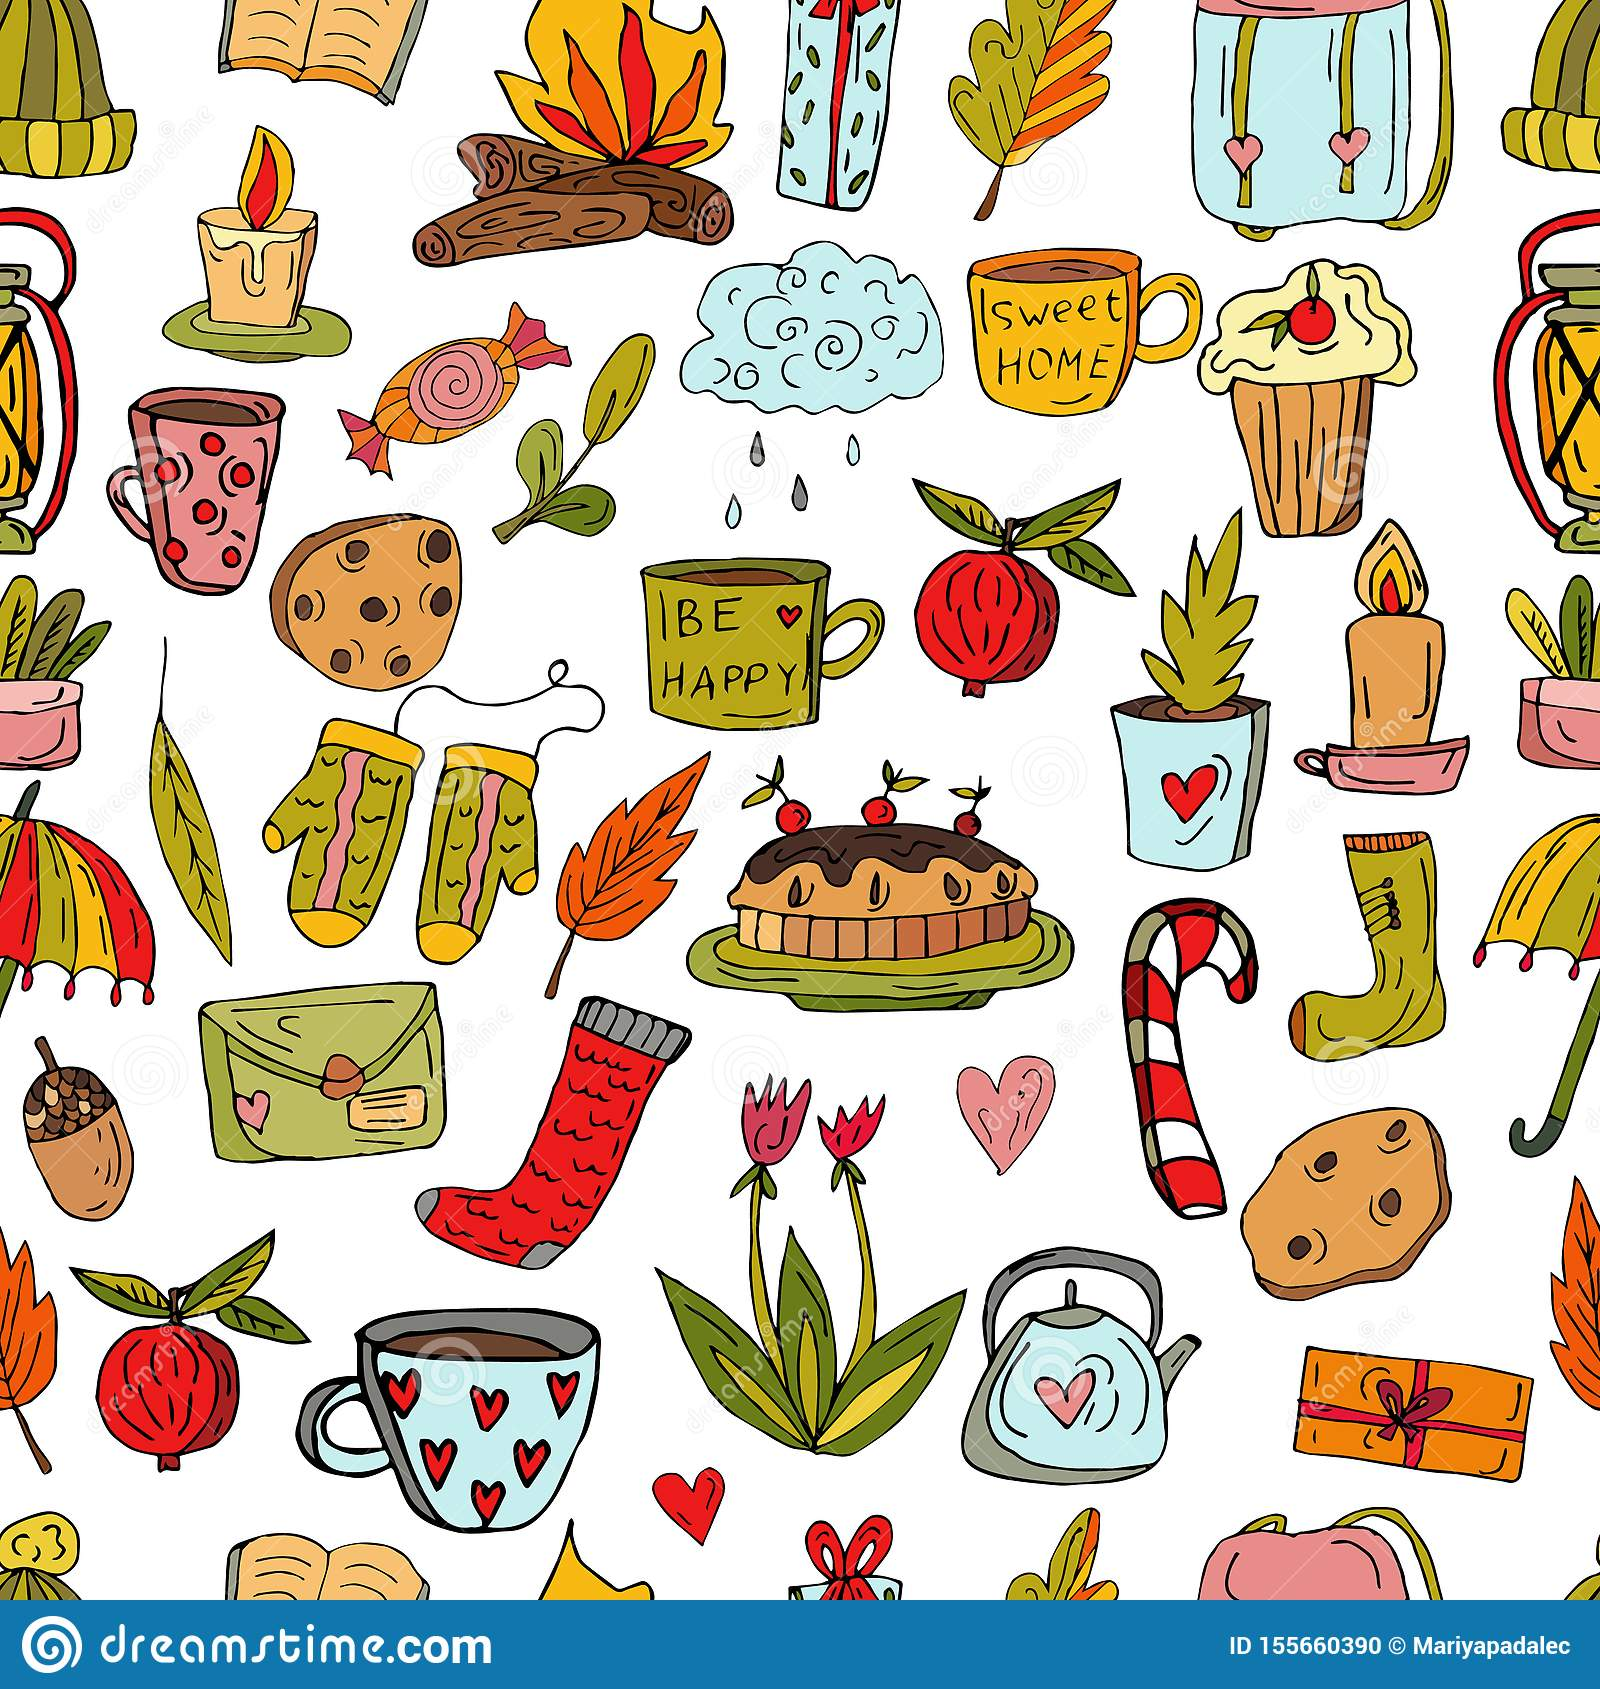 Seamless cute pattern in Scandinavian style. Cherry pie, knitted hat, cup with silver eggs, teapot, flowers and a vintage lantern